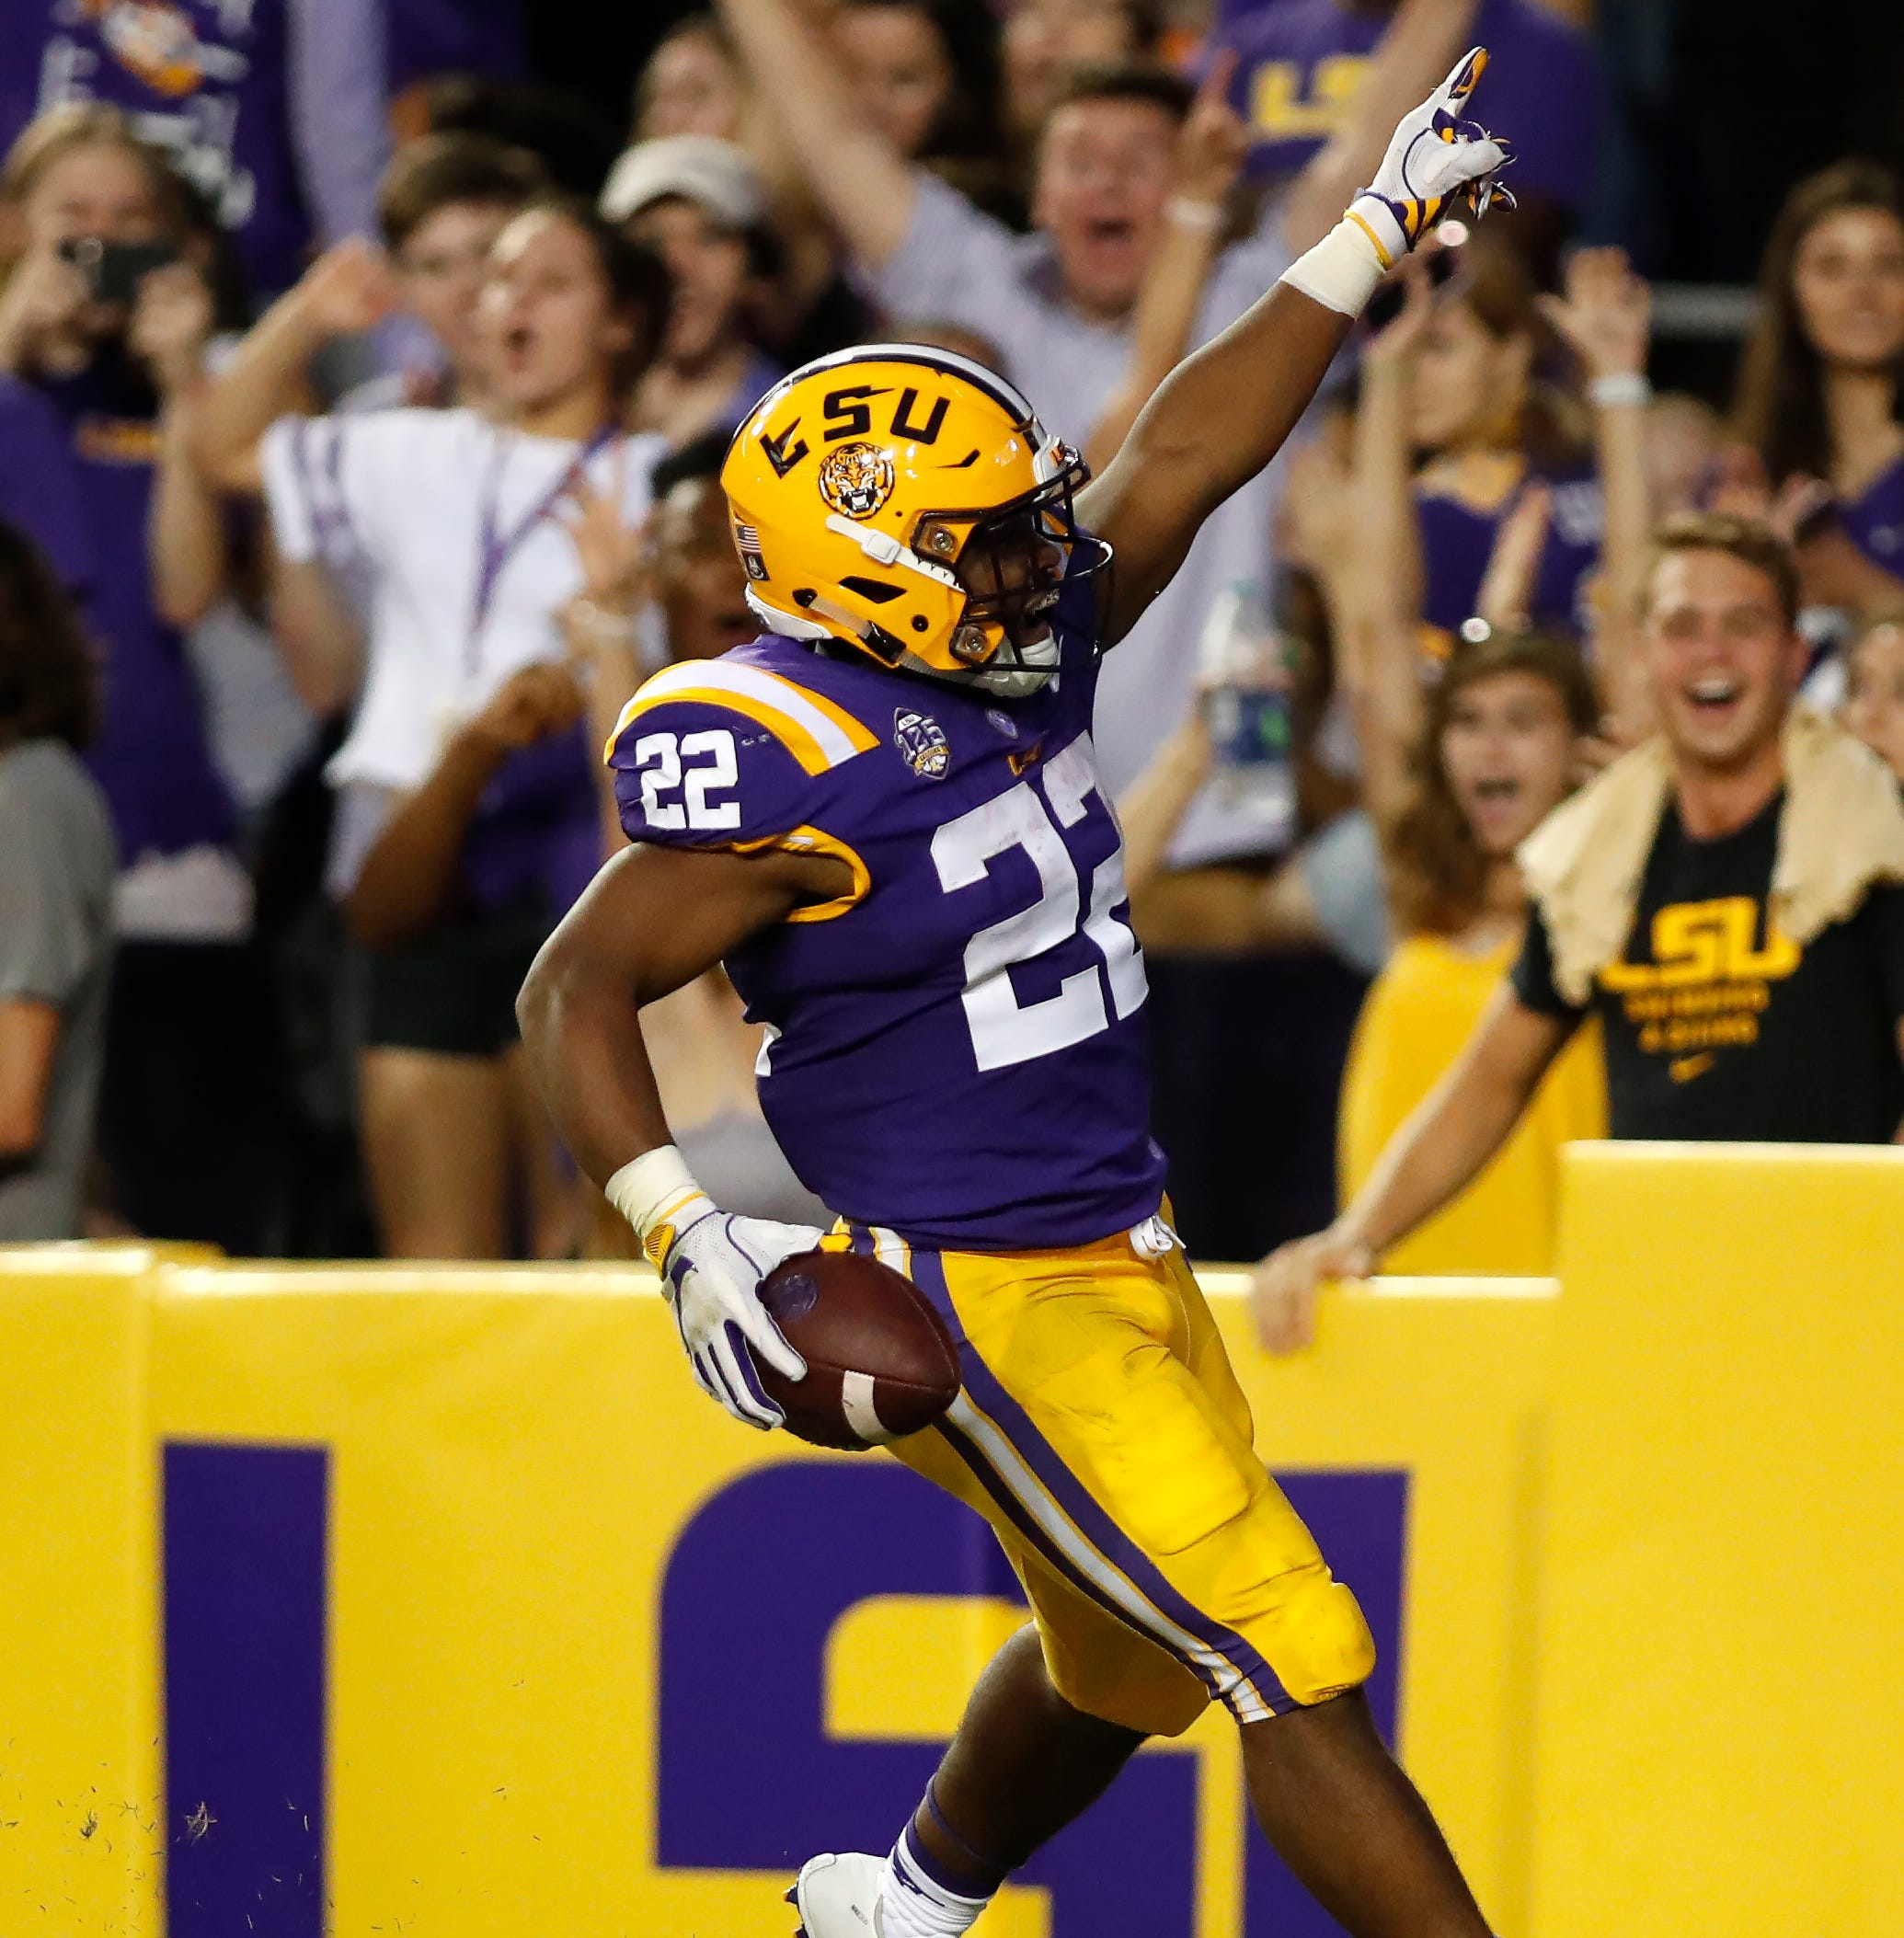 LSU wide receiver Justin Jefferson (2) reacts after scoring a touchdown against Louisiana Tech in the first half of an NCAA college football game against in Baton Rouge, La., Saturday, Sept. 22, 2018.